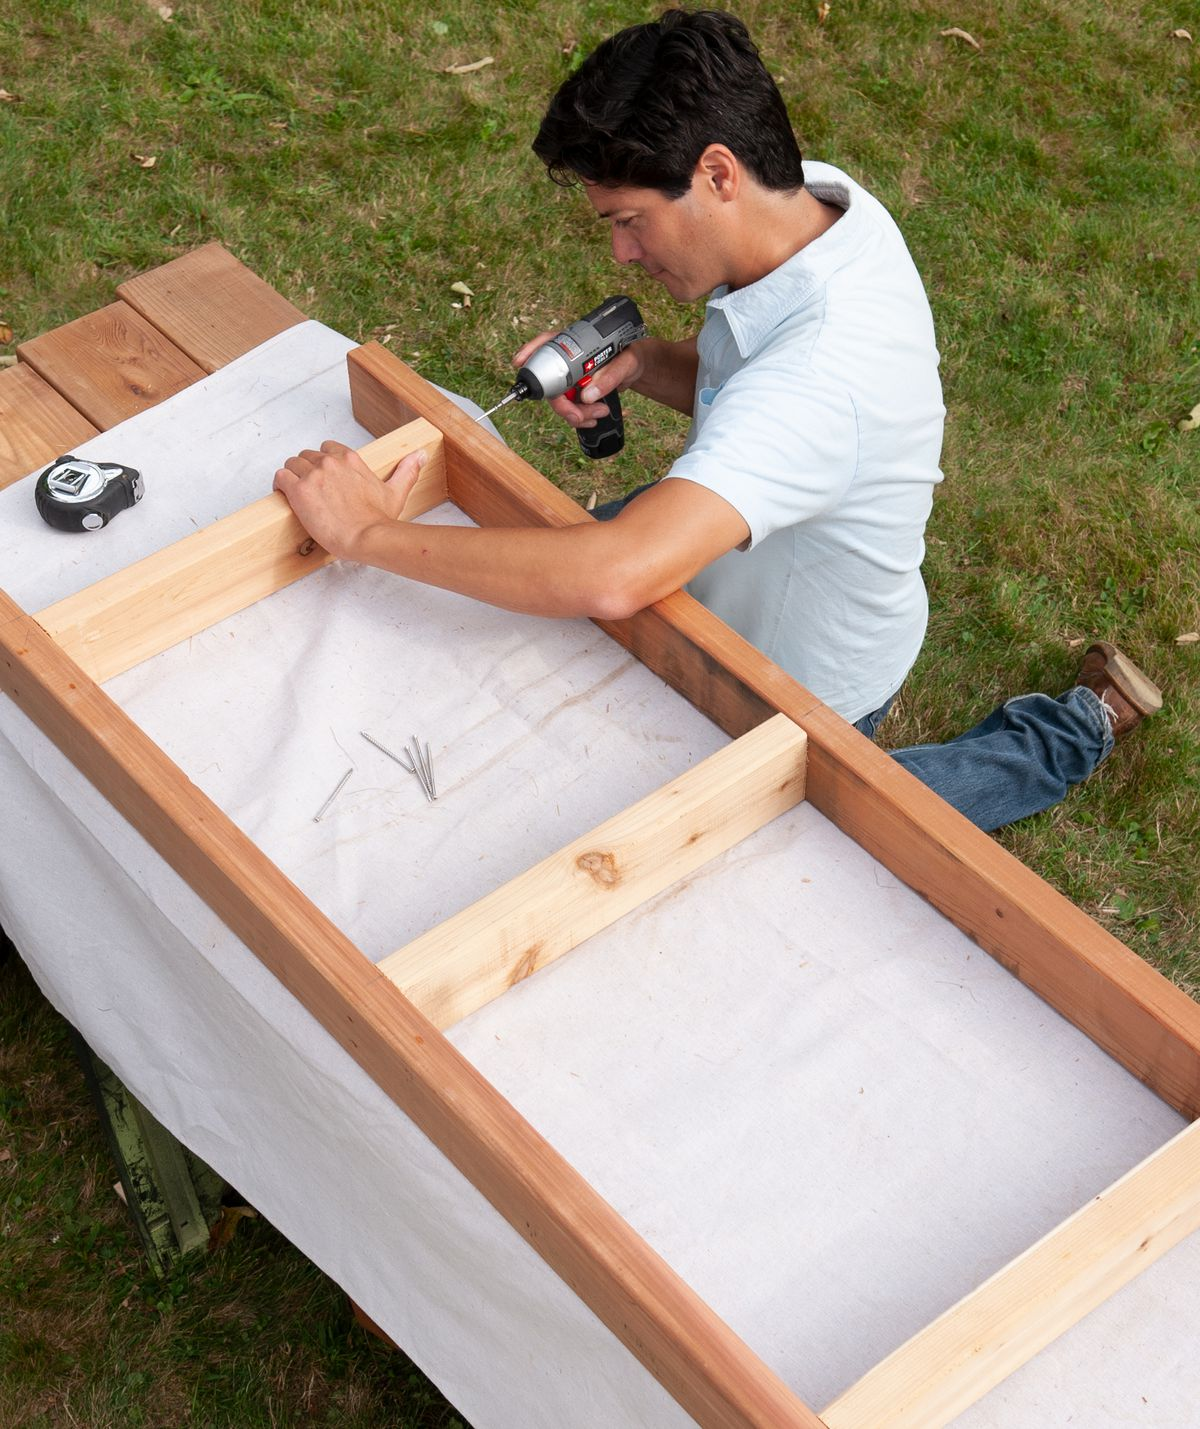 Man Cuts And Assembles Seat Base Of Arbor Bench